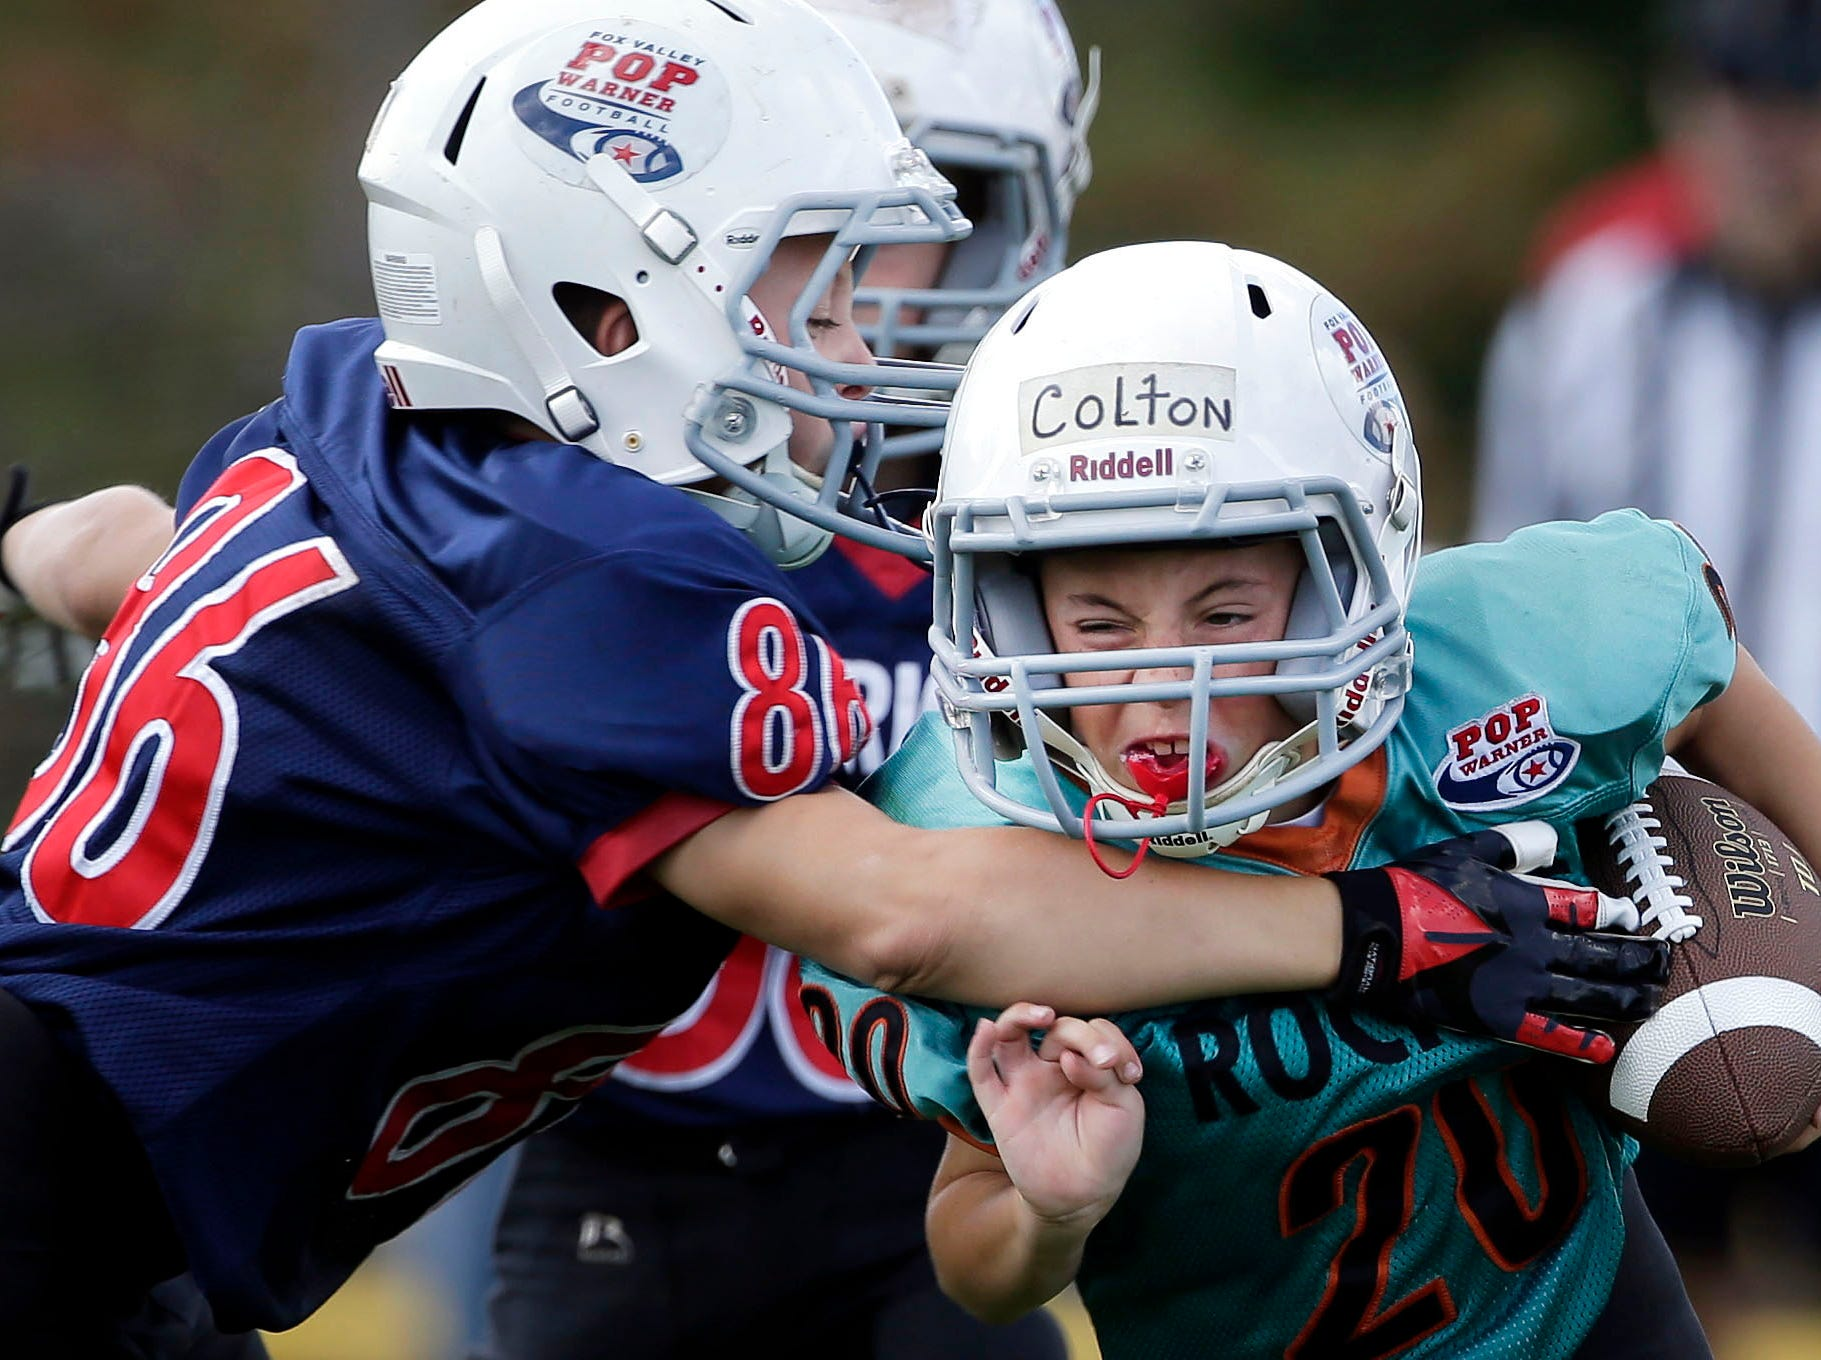 Colton Kreger of the Rockets carries the ball against the Patriots in the Junior Pee Wee Division as Fox Valley Pop Warner Football opens the season Saturday, September 8, 2018, at Plamann Park in Grand Chute, Wis.Ron Page/USA TODAY NETWORK-Wisconsin